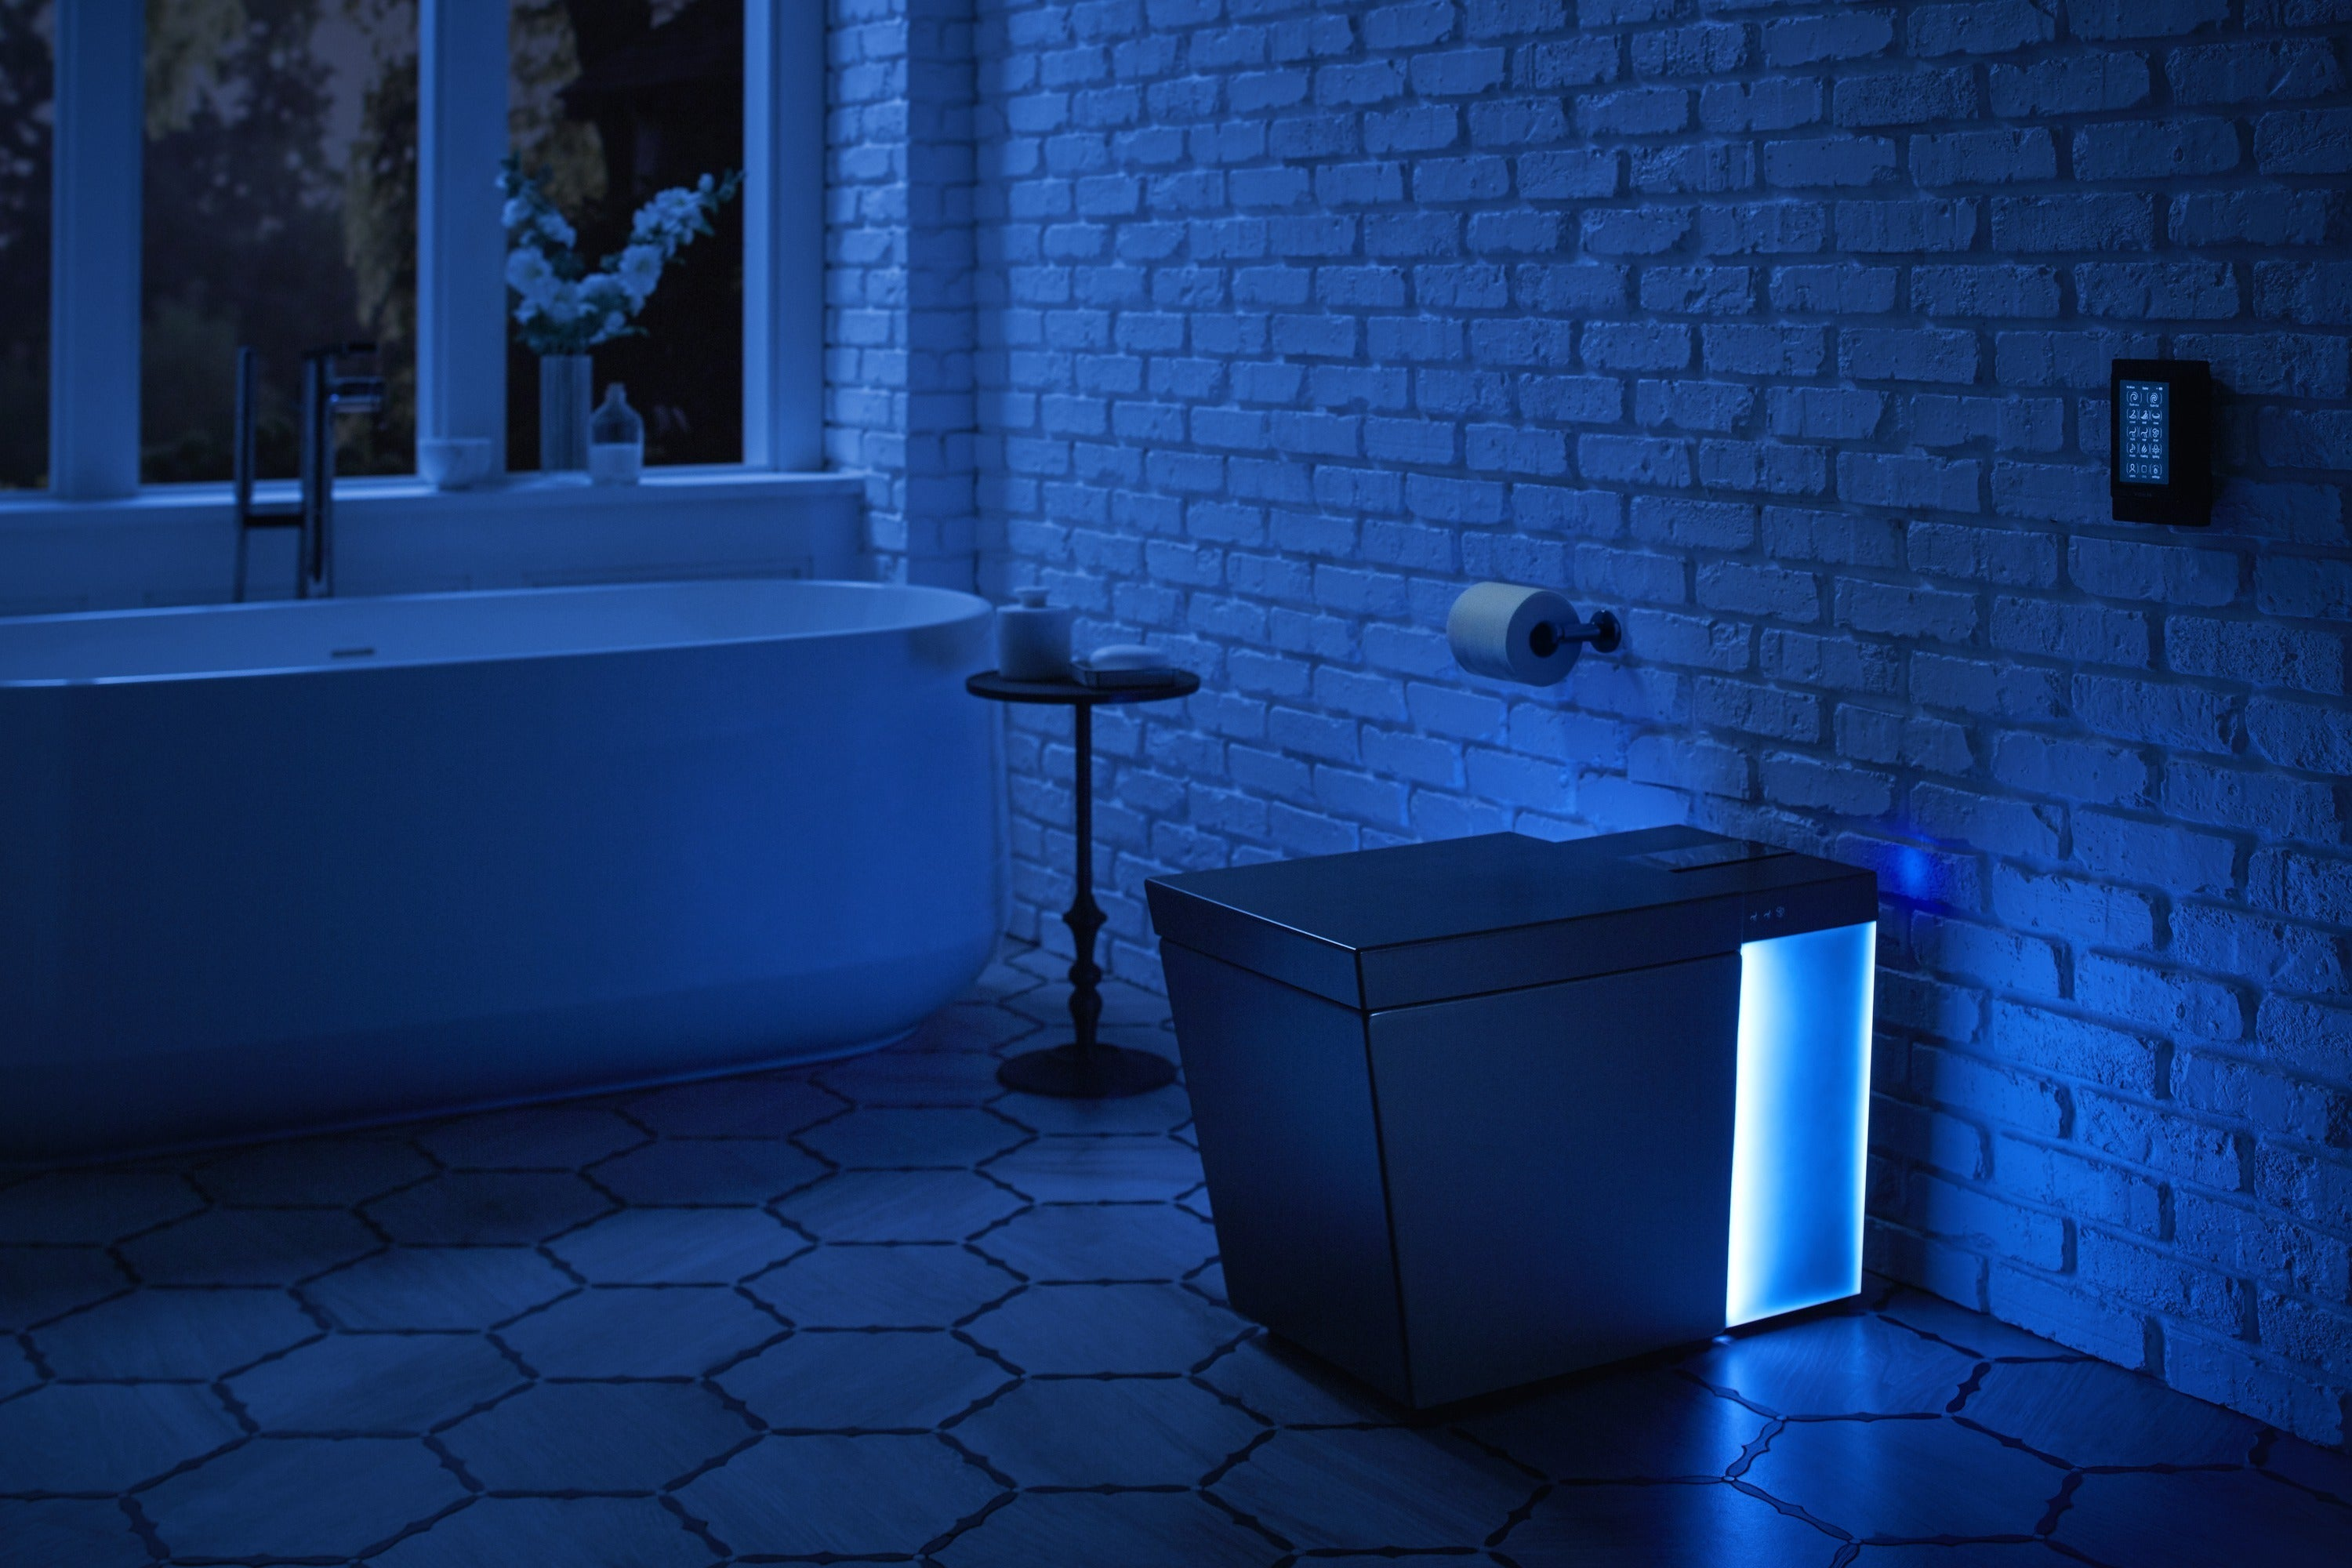 Kohler Has Smart Kitchen And Bath Products To Show At CES TechHive